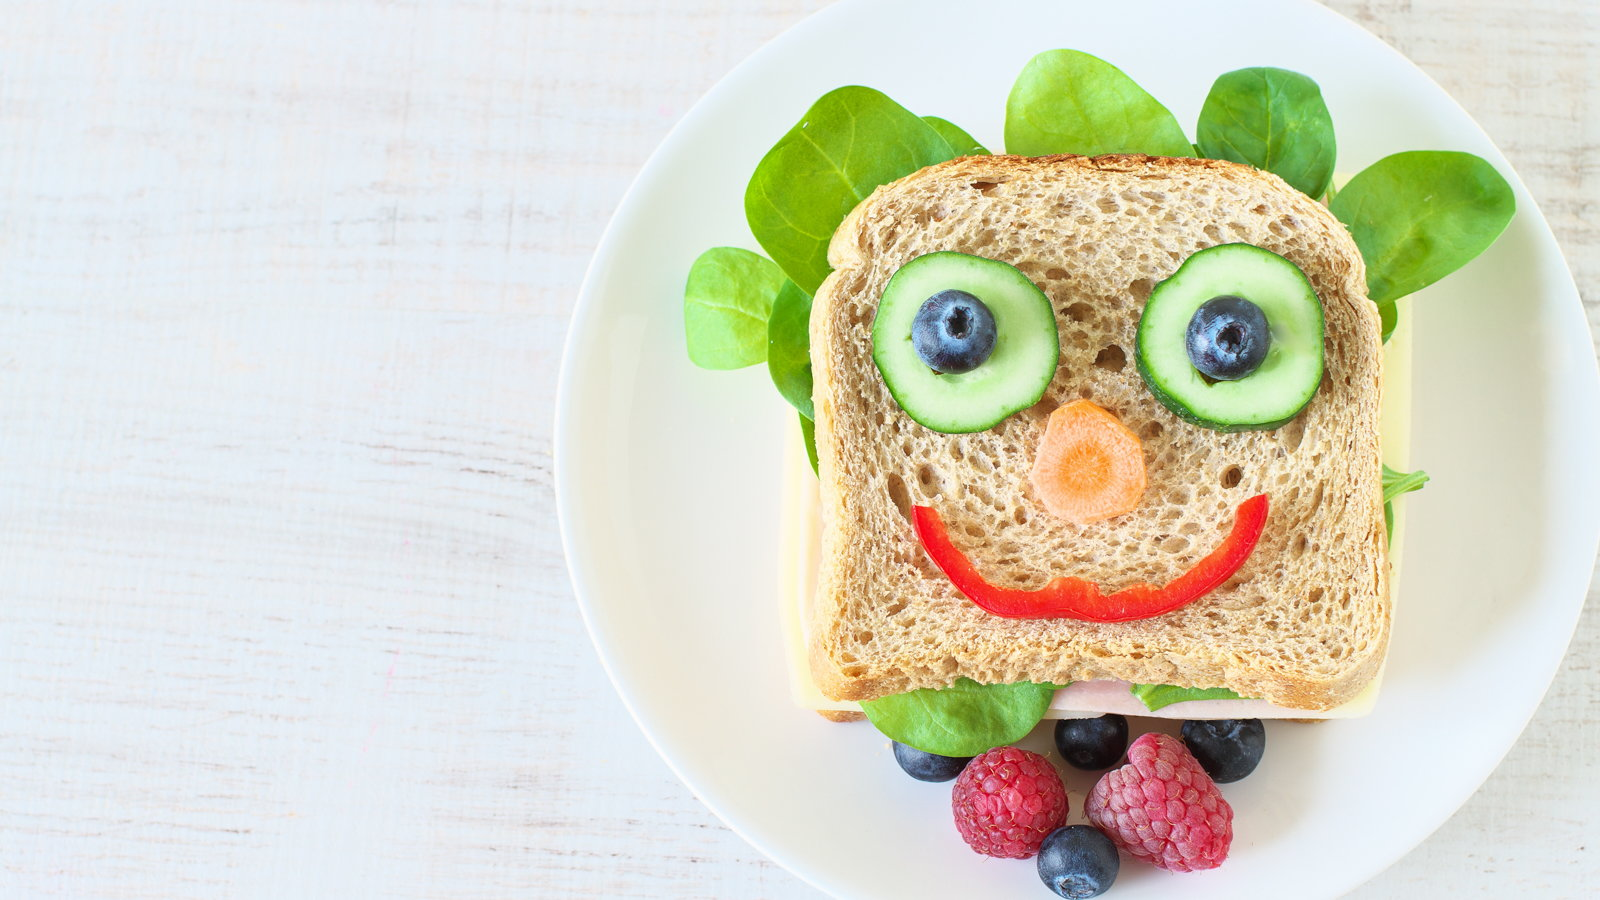 sandwich with a veggie smiley face